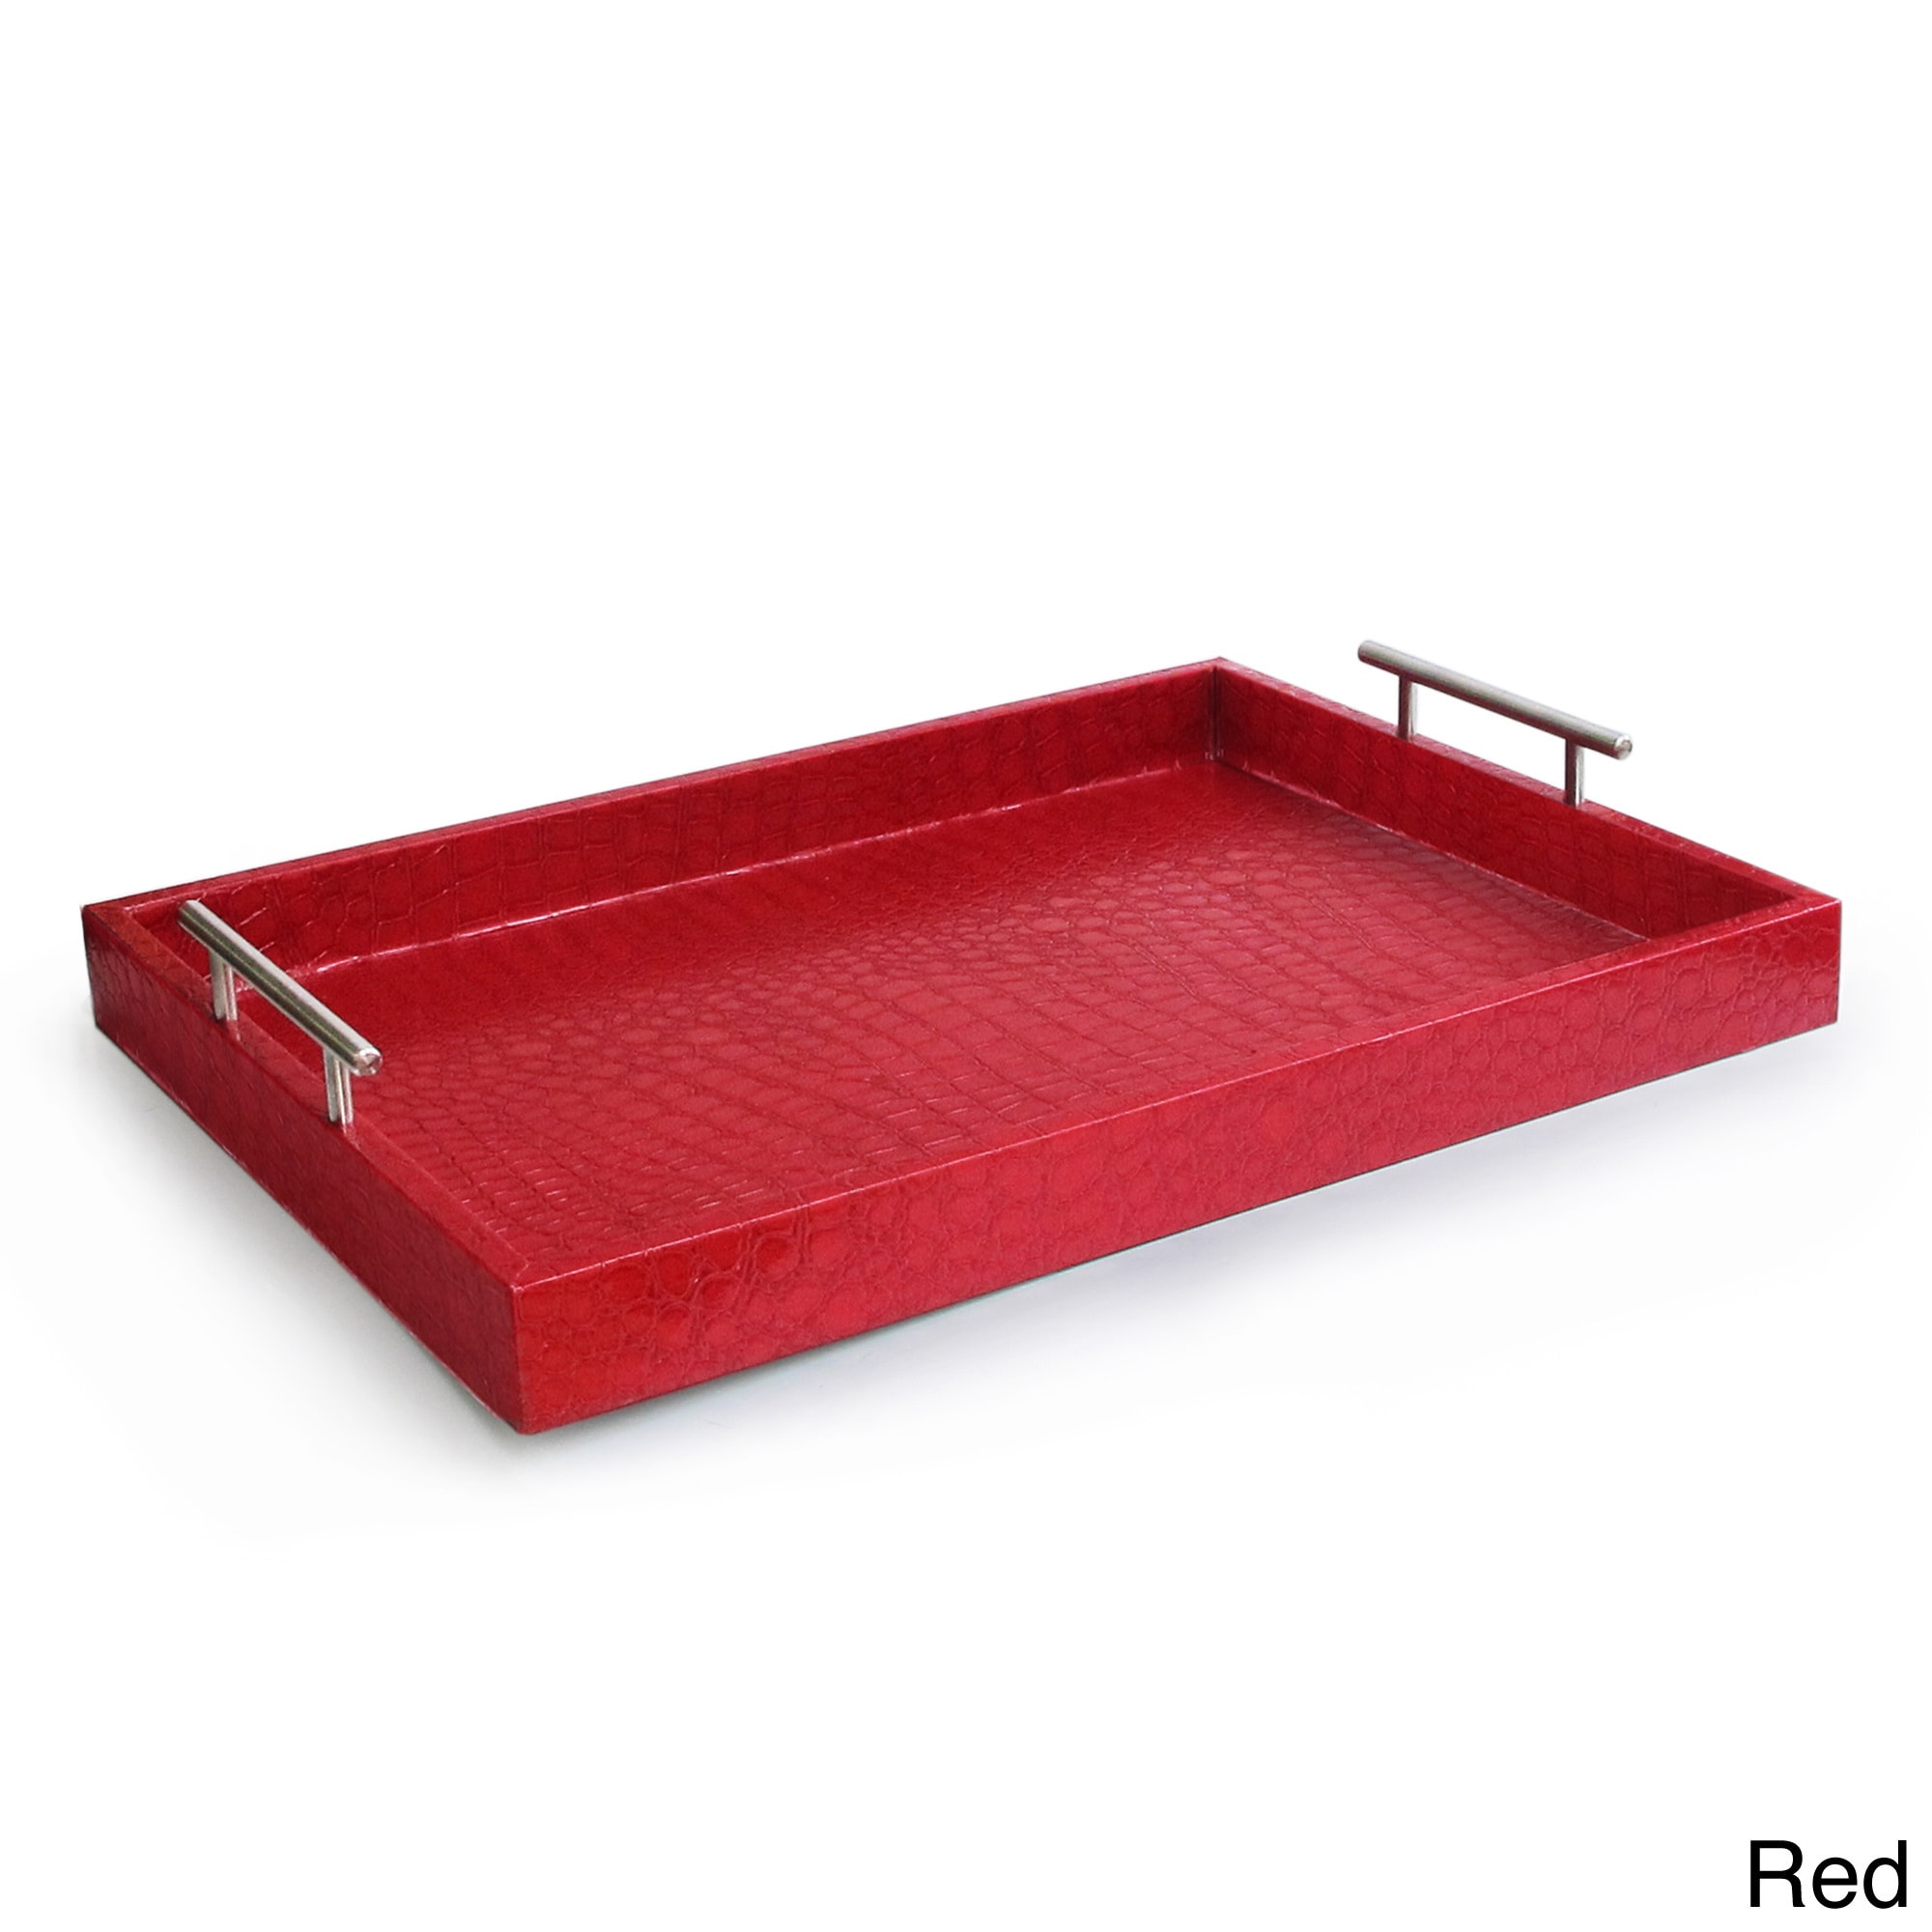 Croc-embossed Serving Tray with Metal Handles - Free Shipping On Orders  Over $45 - Overstock.com - 16143529